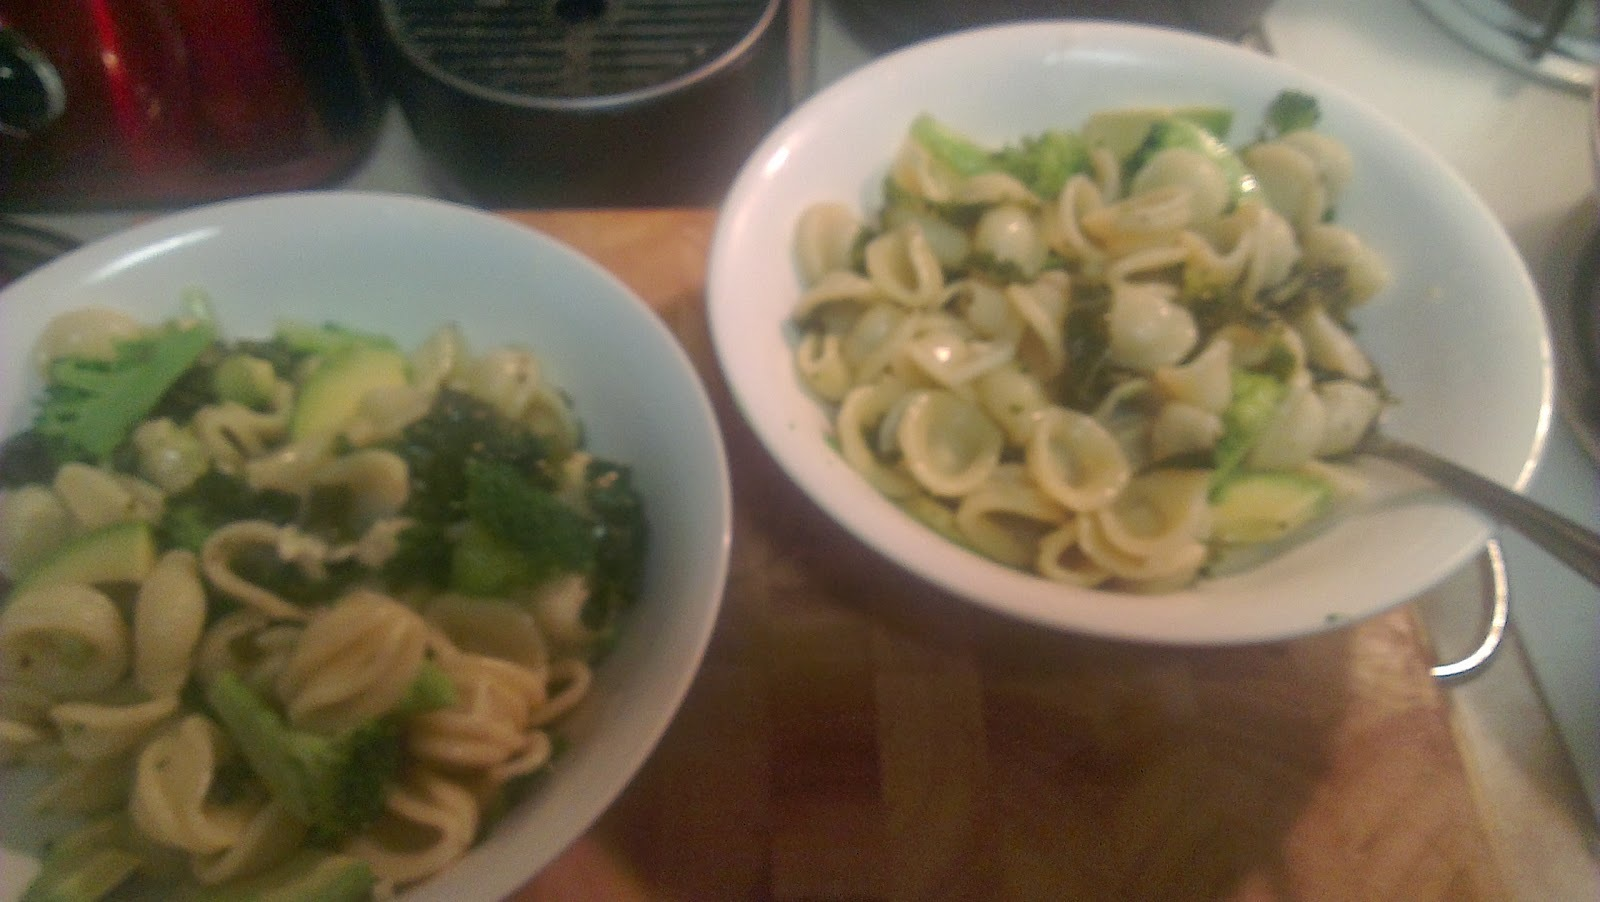 Vegan Dinner Recipe: Orecchiette with white wine, garlic and greens